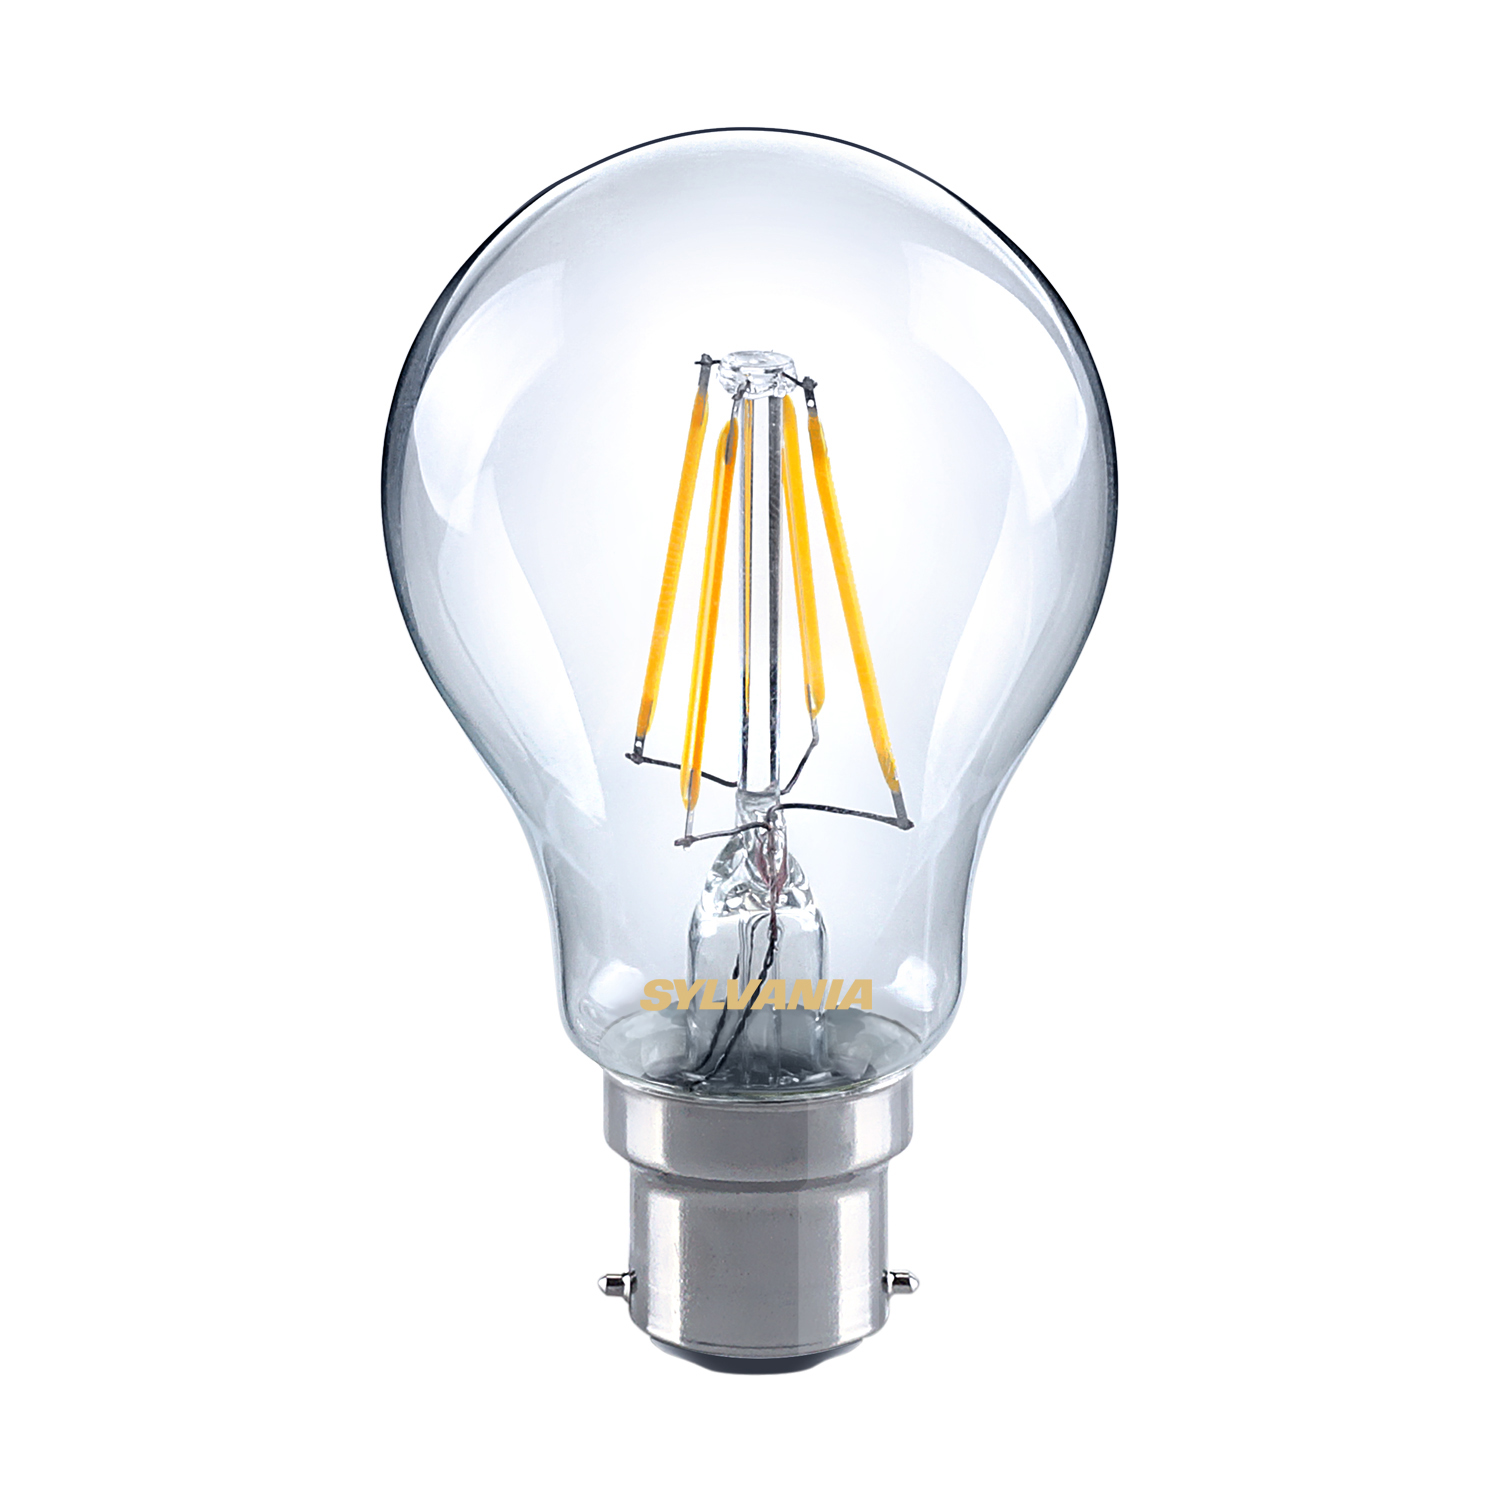 Sylvania 5W LED GLS traditional light bulb B22 BC warm white 2700K non-dimmable Thumbnail 1